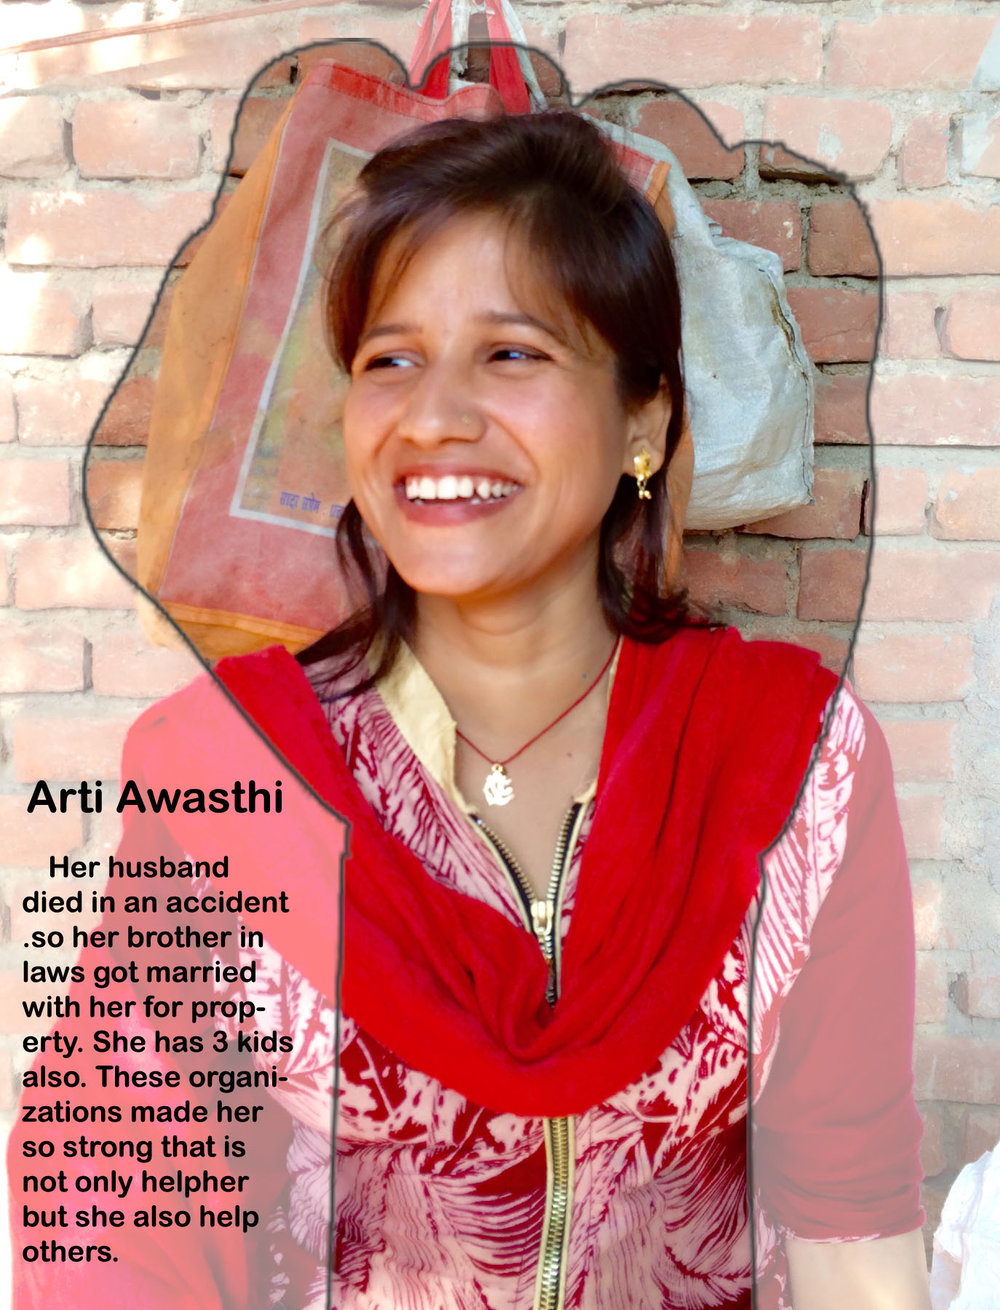 Arti awasthi women human right defender--.jpg